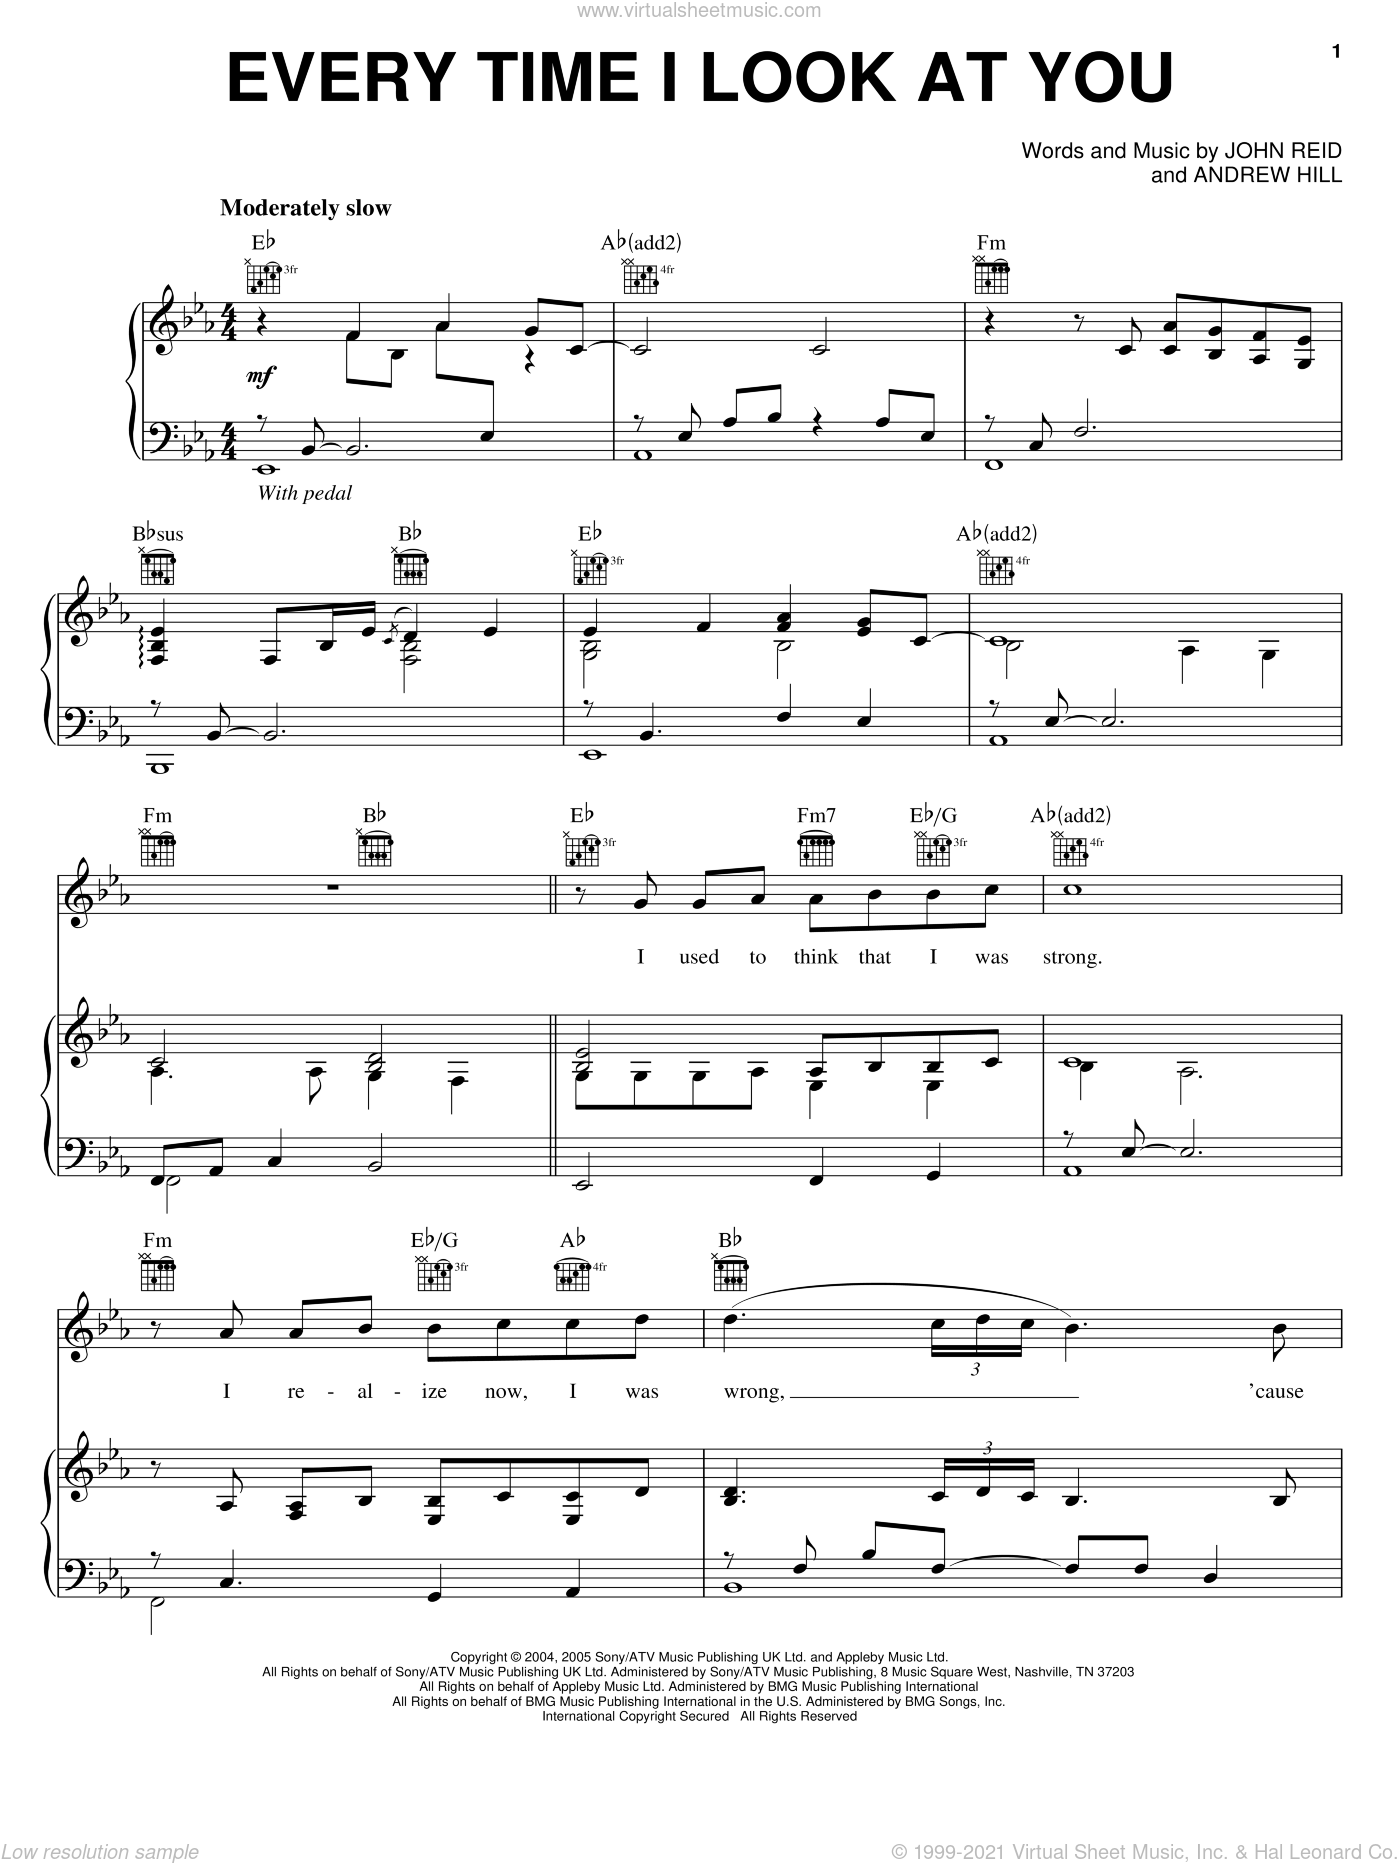 Every Time I Look At You sheet music for voice, piano or guitar by John Reid